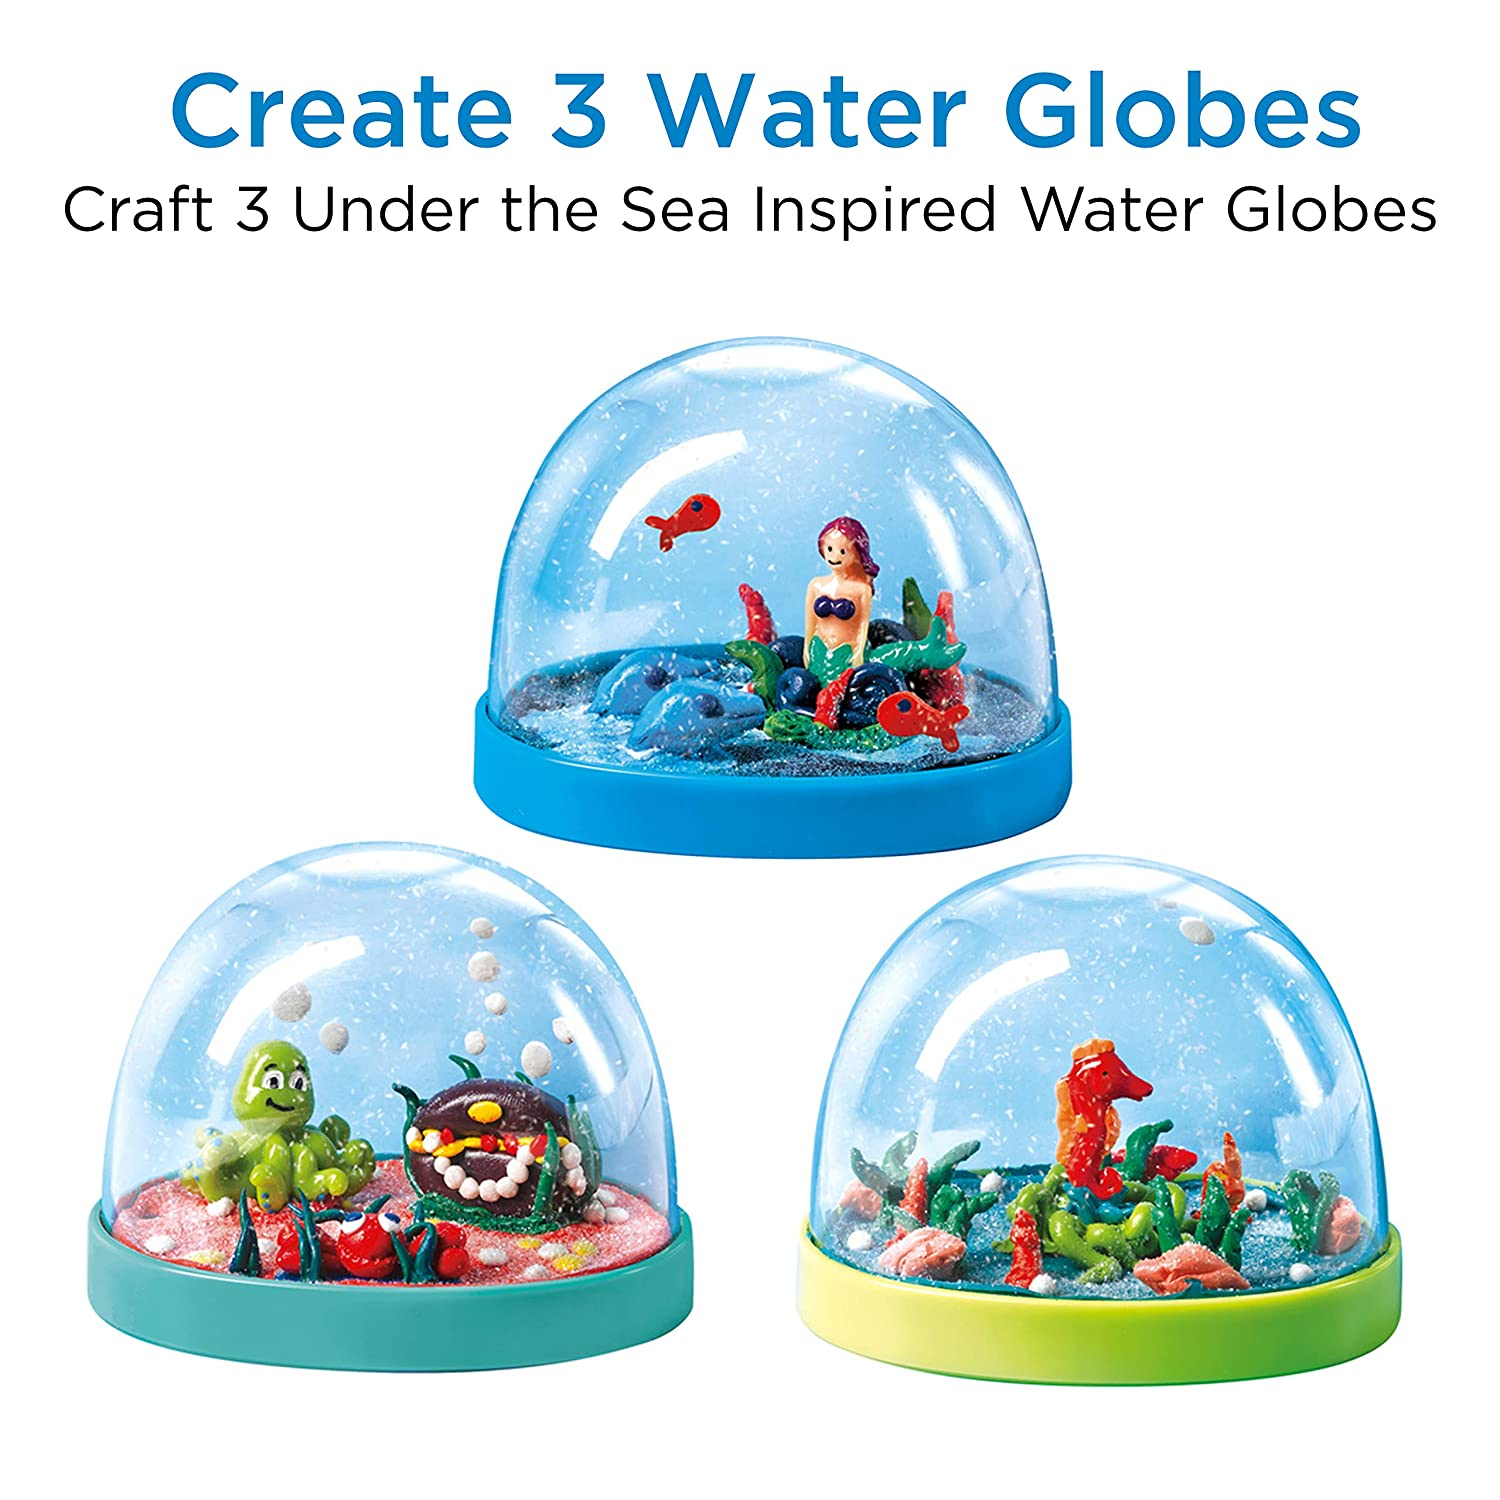 Amazon.com: Creativity for Kids Make Your Own Water Globes - Under ...